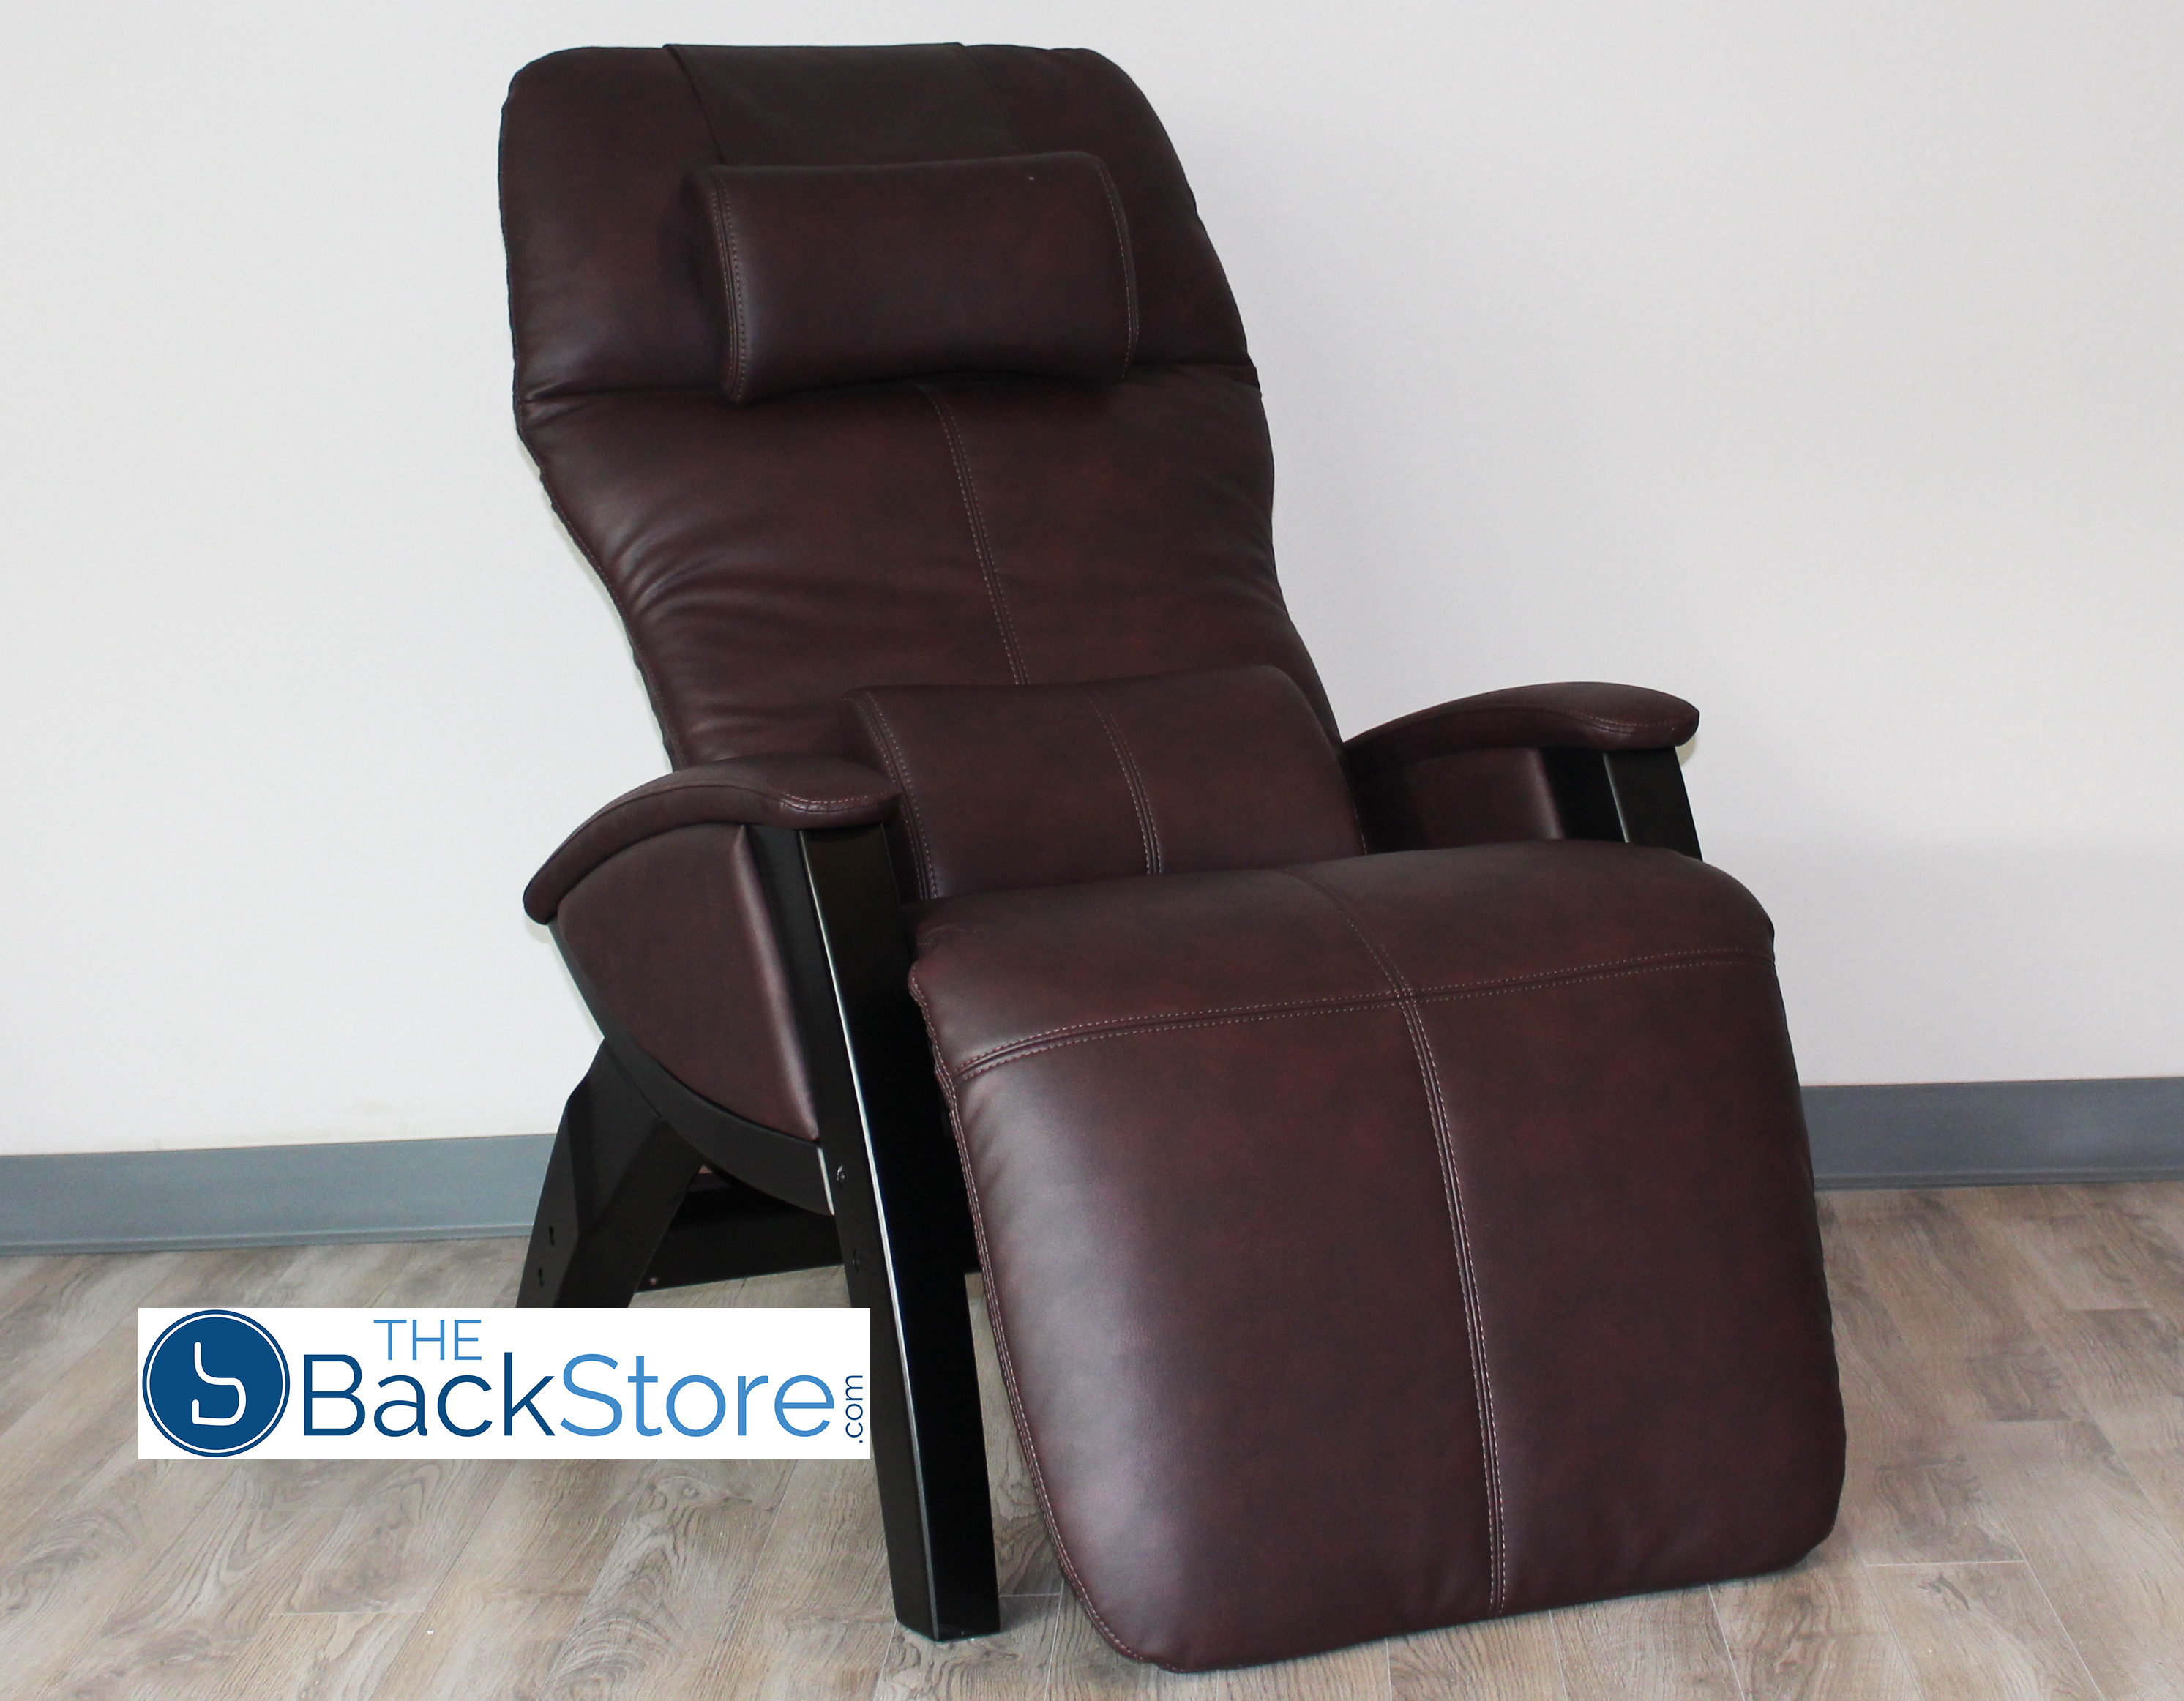 design use home decoration back for pain best a how recliner chair zero anti gallery alpine gravity oversized recliners kohls to